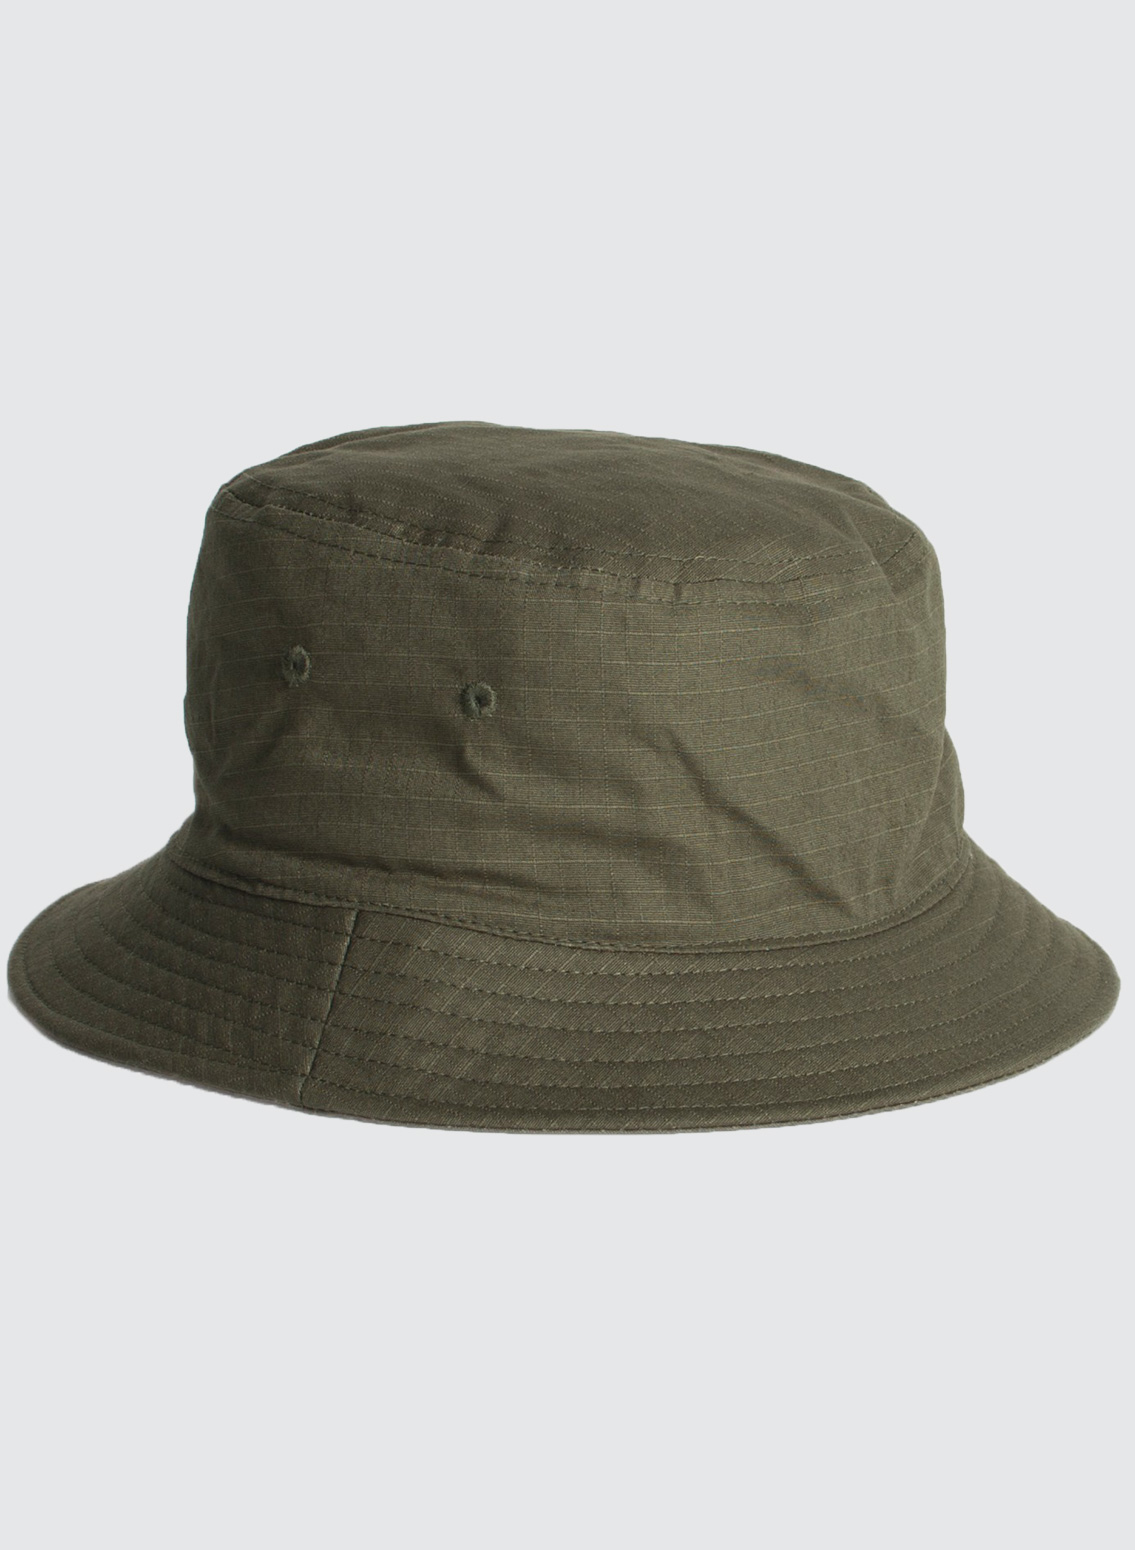 1104 Bucket Hat Business Image Group